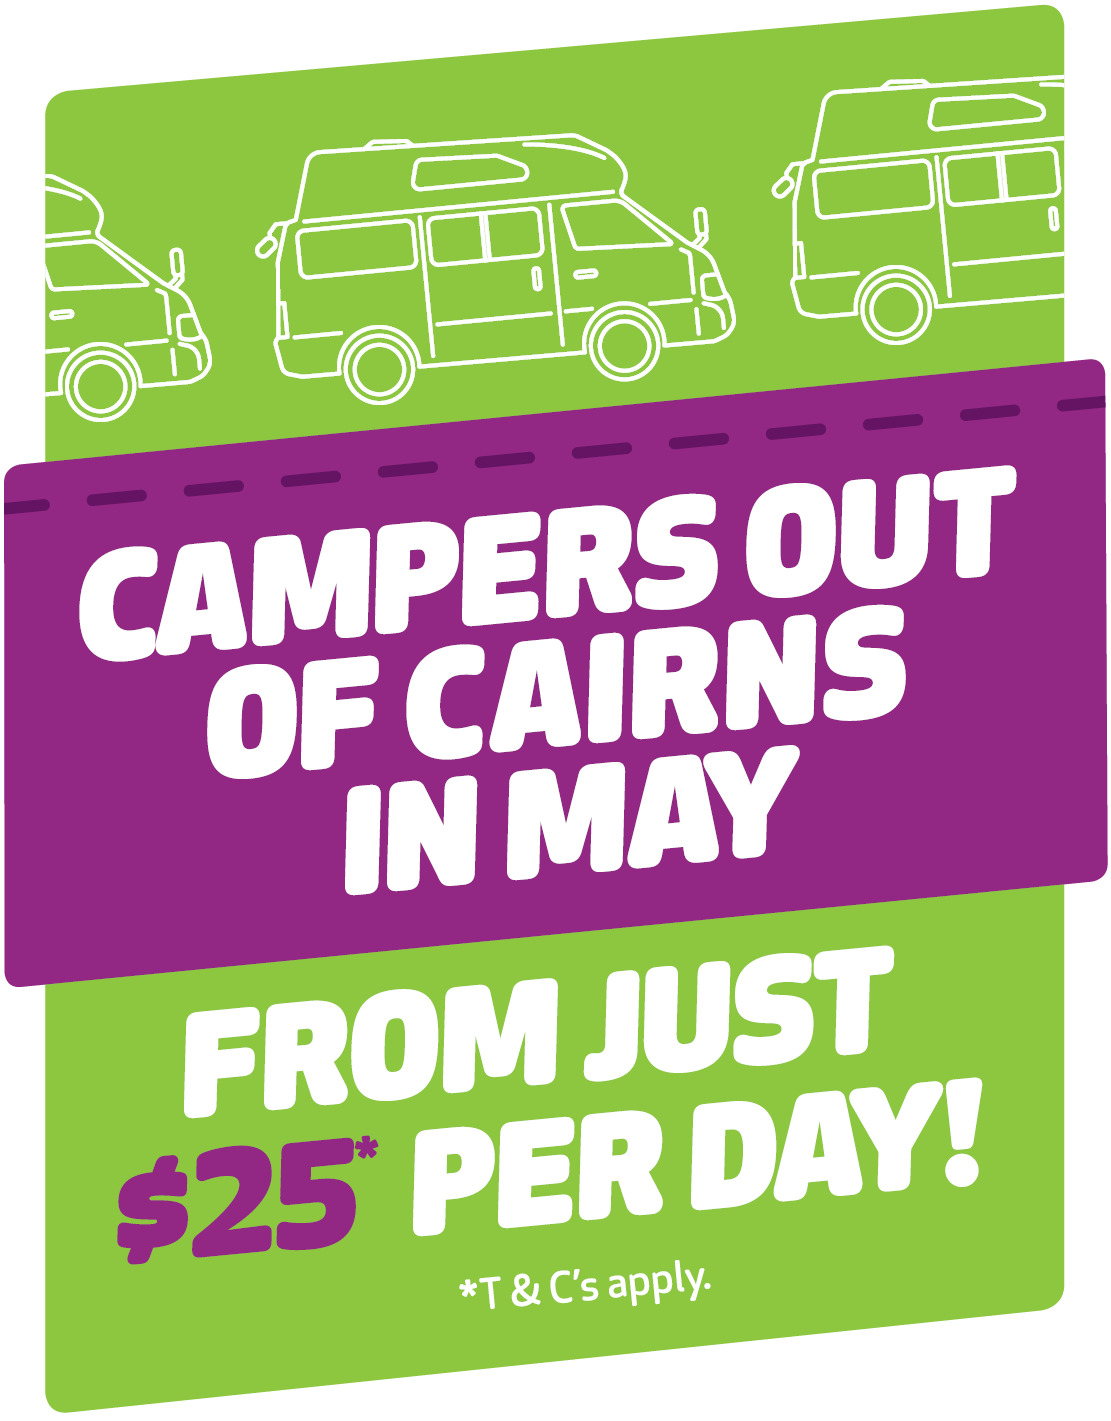 cairns low rates promo